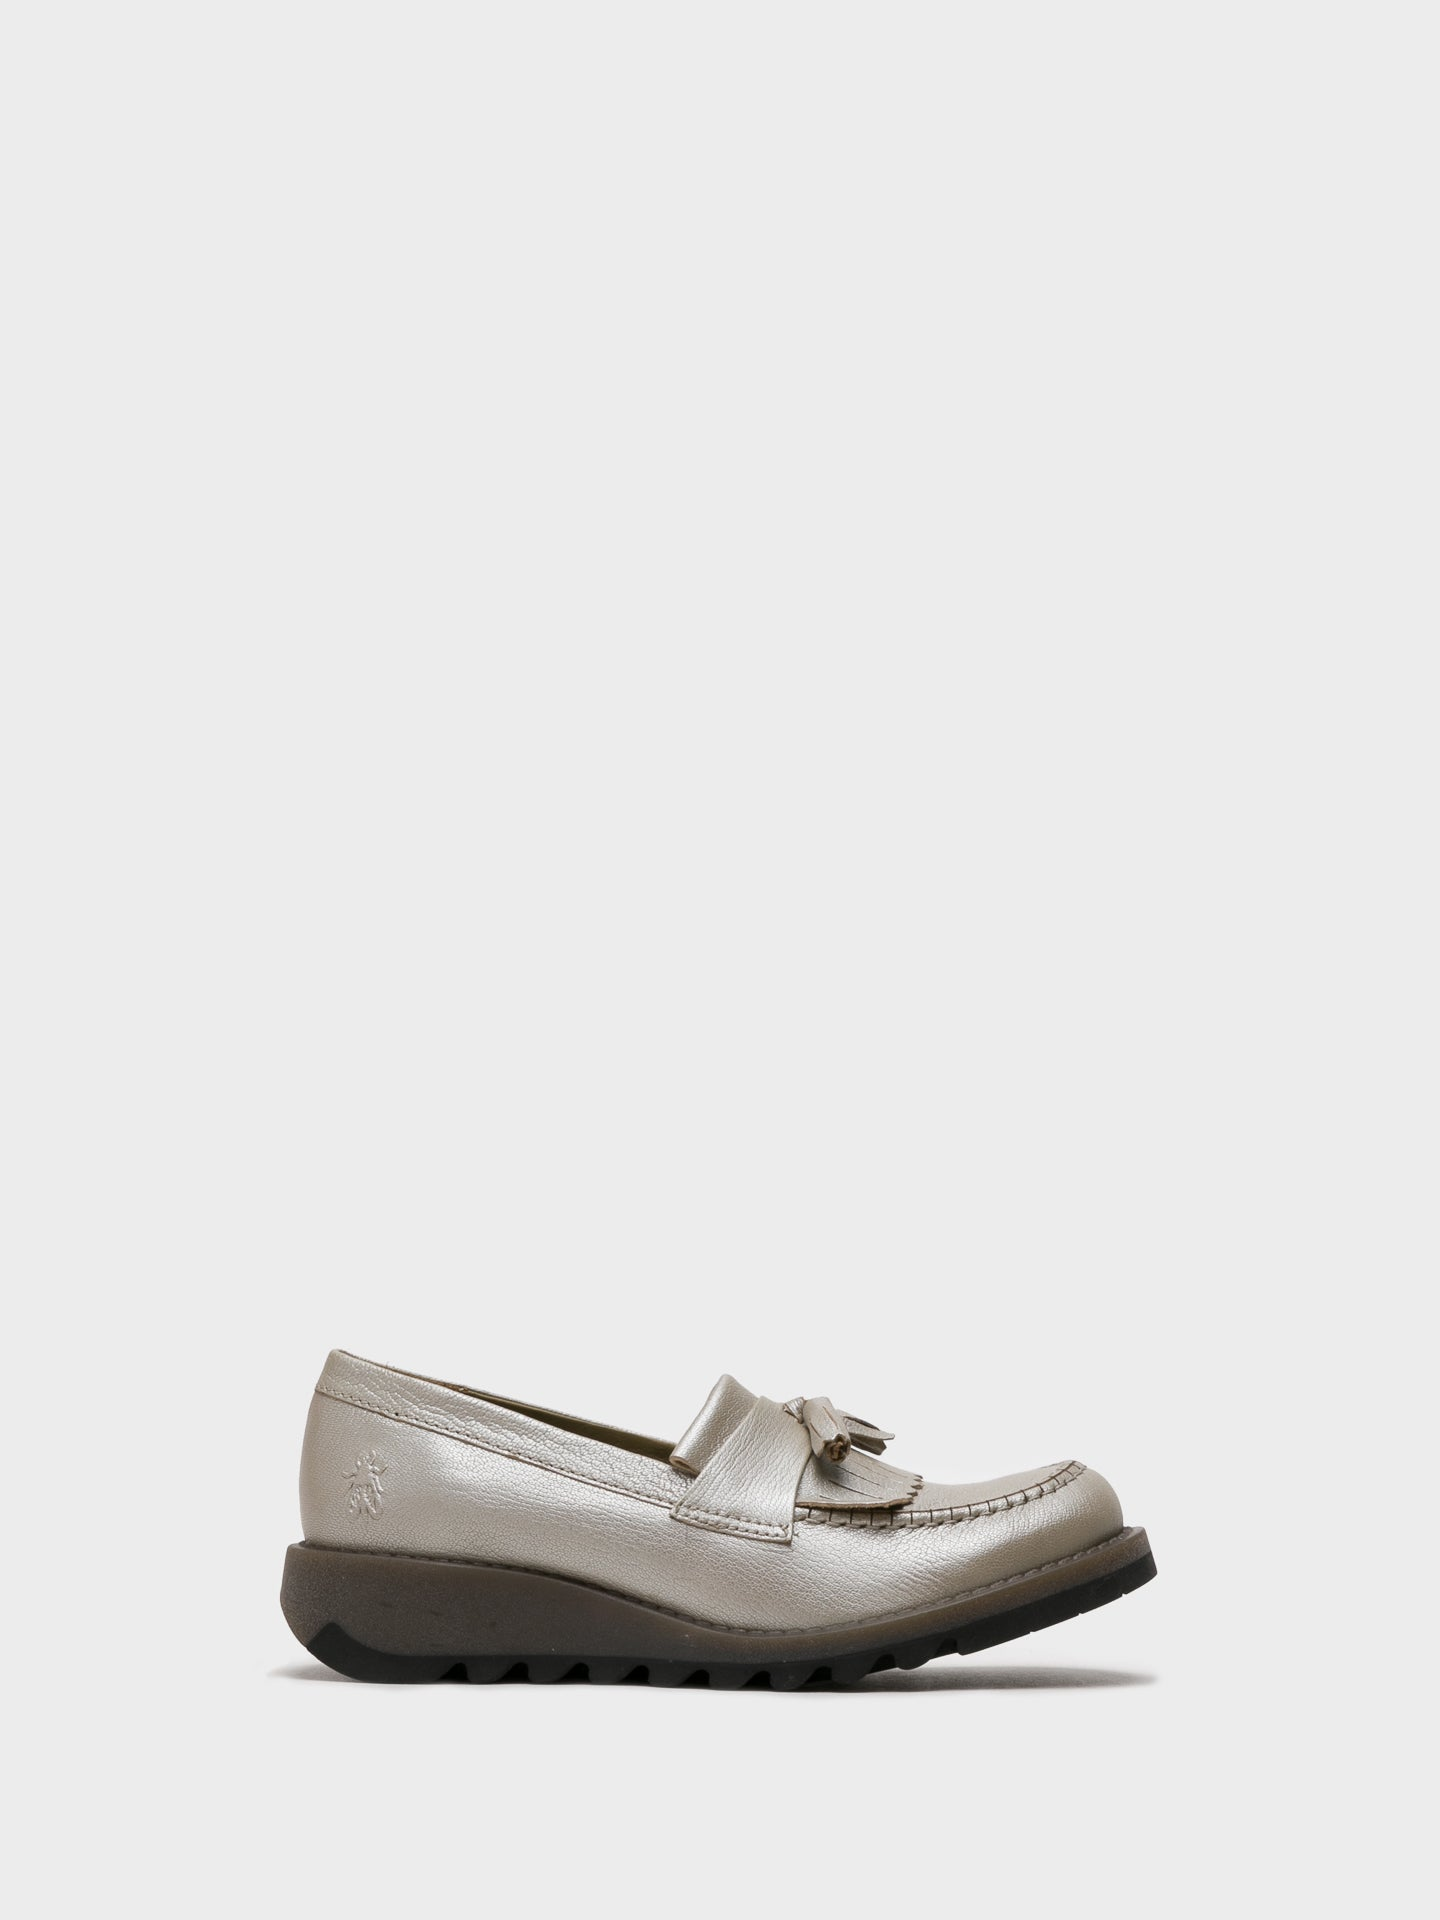 Fly London Zapatos Loafers en color Plata